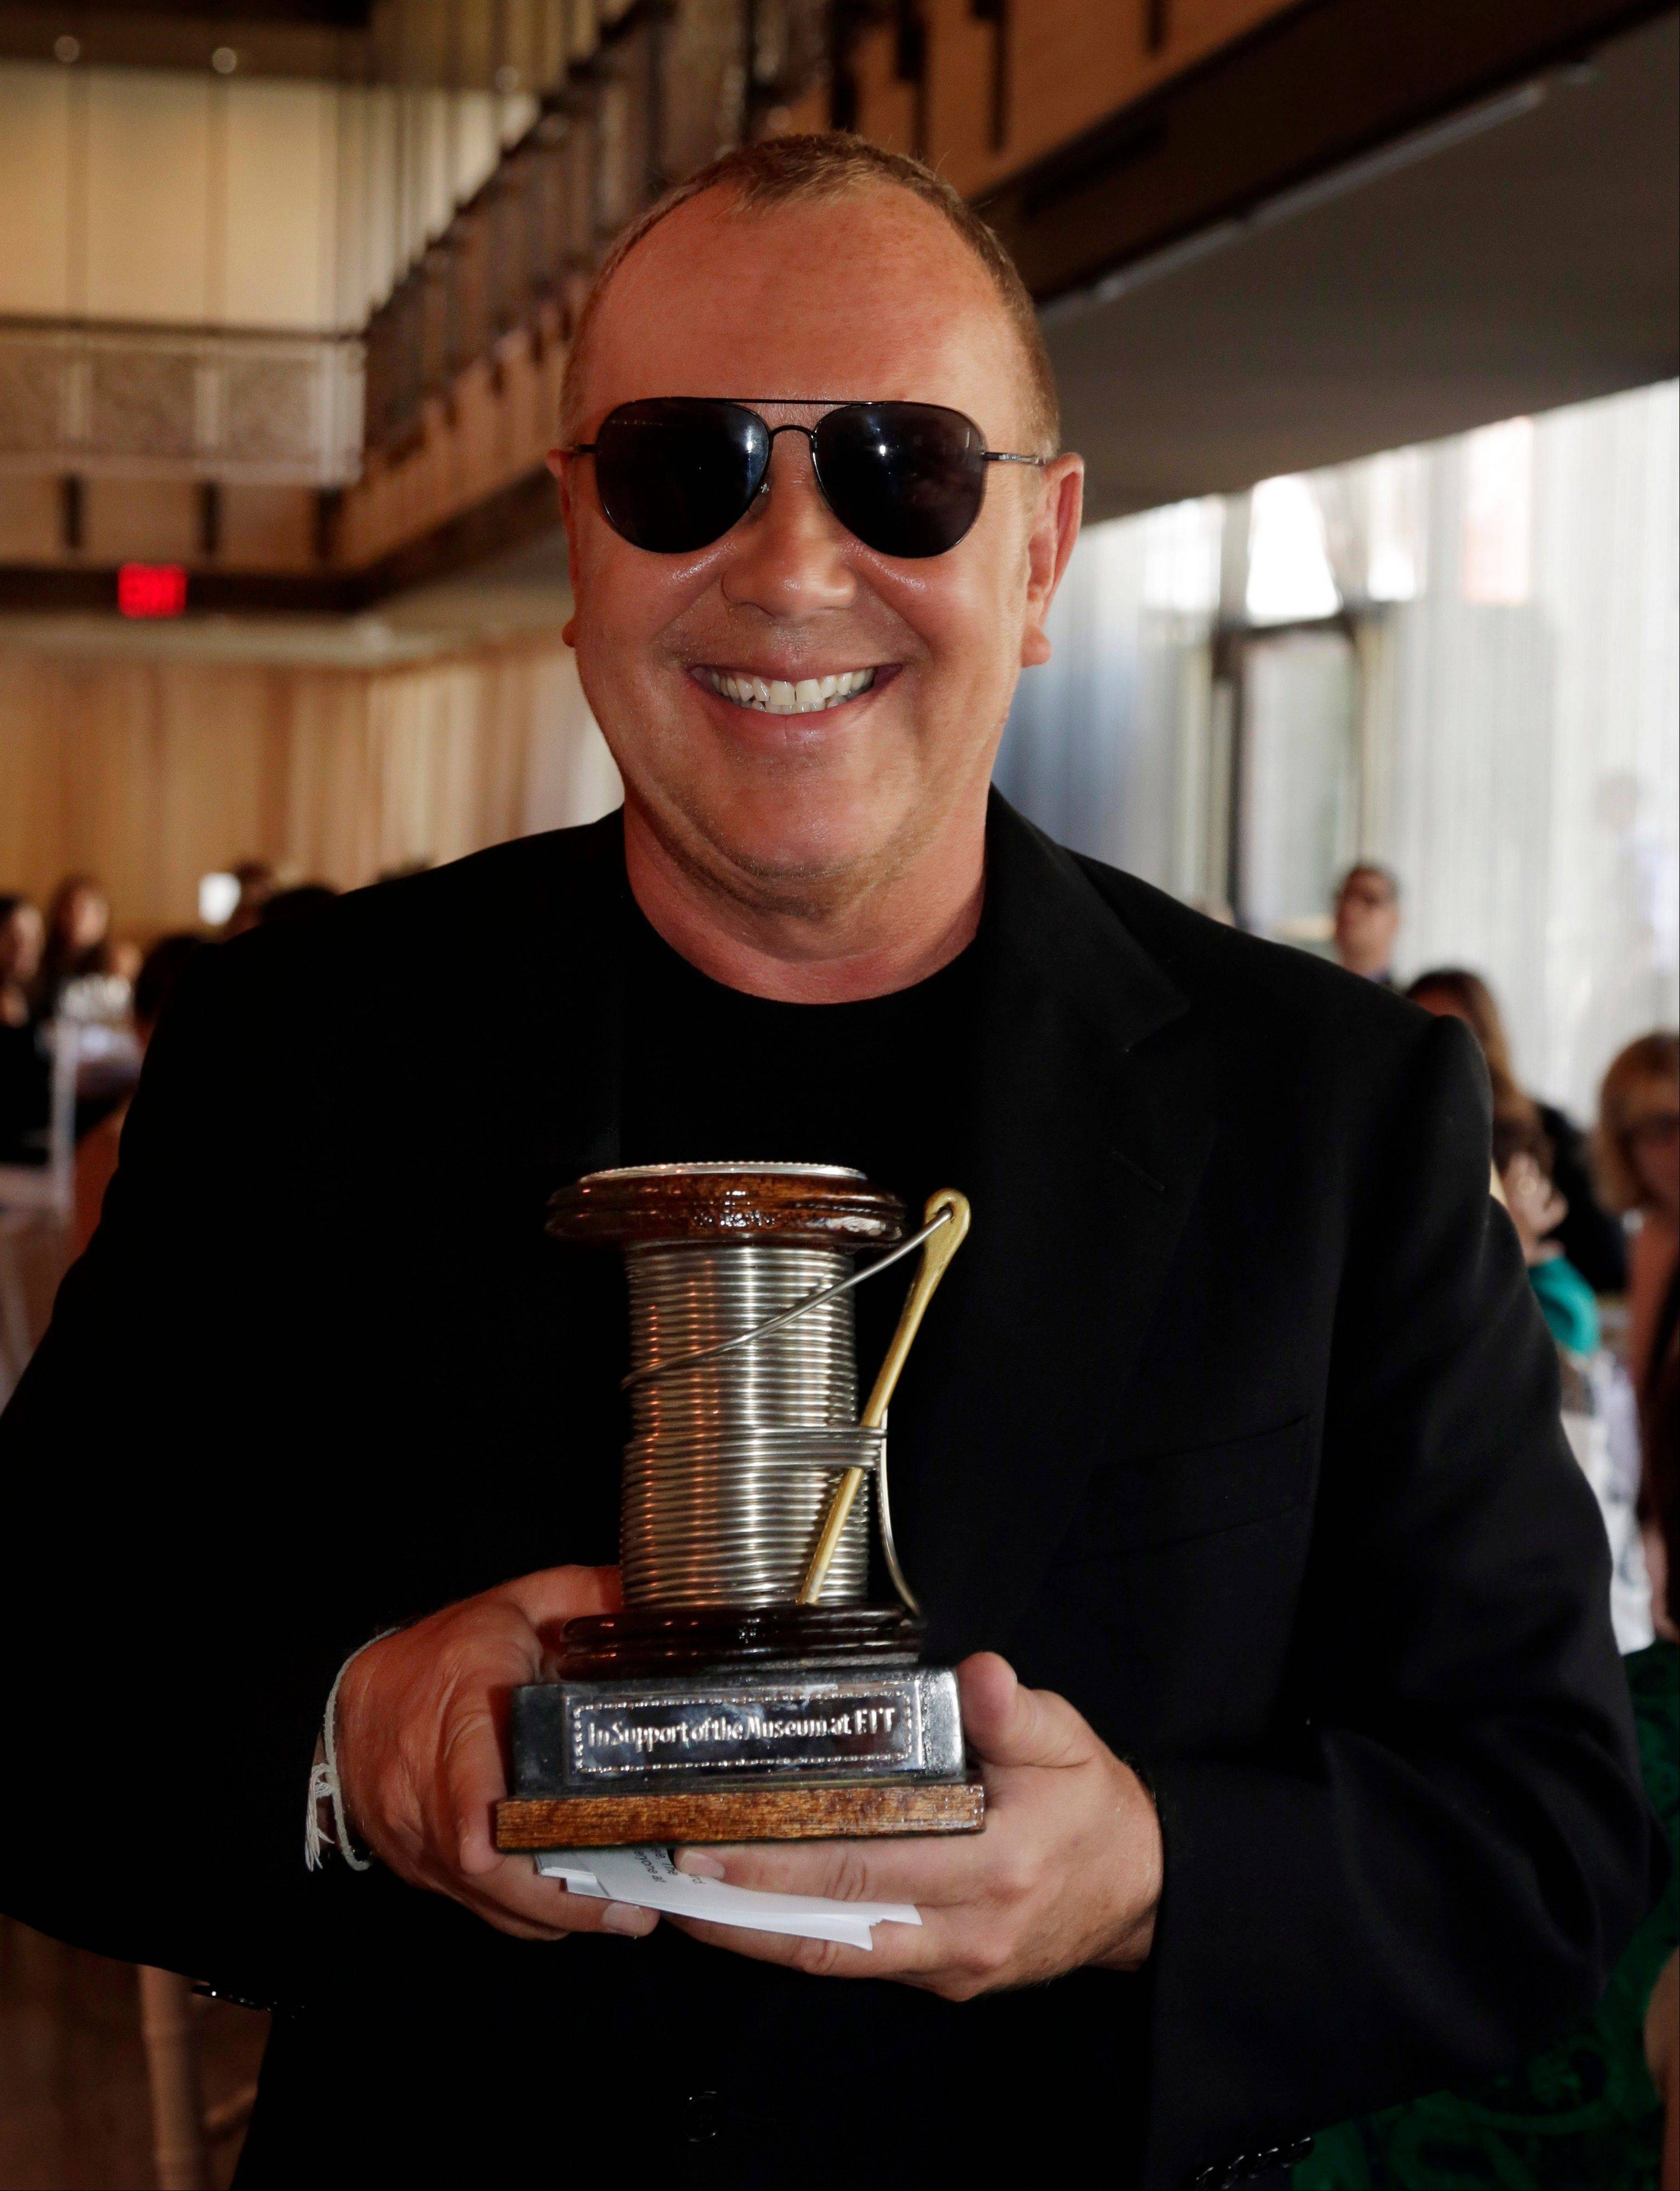 Designer Michael Kors holds the 2013 Couture Council Award for Artistry of Fashion presented by actress Hilary Swank during a luncheon in the David H. Koch Theater of New York�s Lincoln Center.